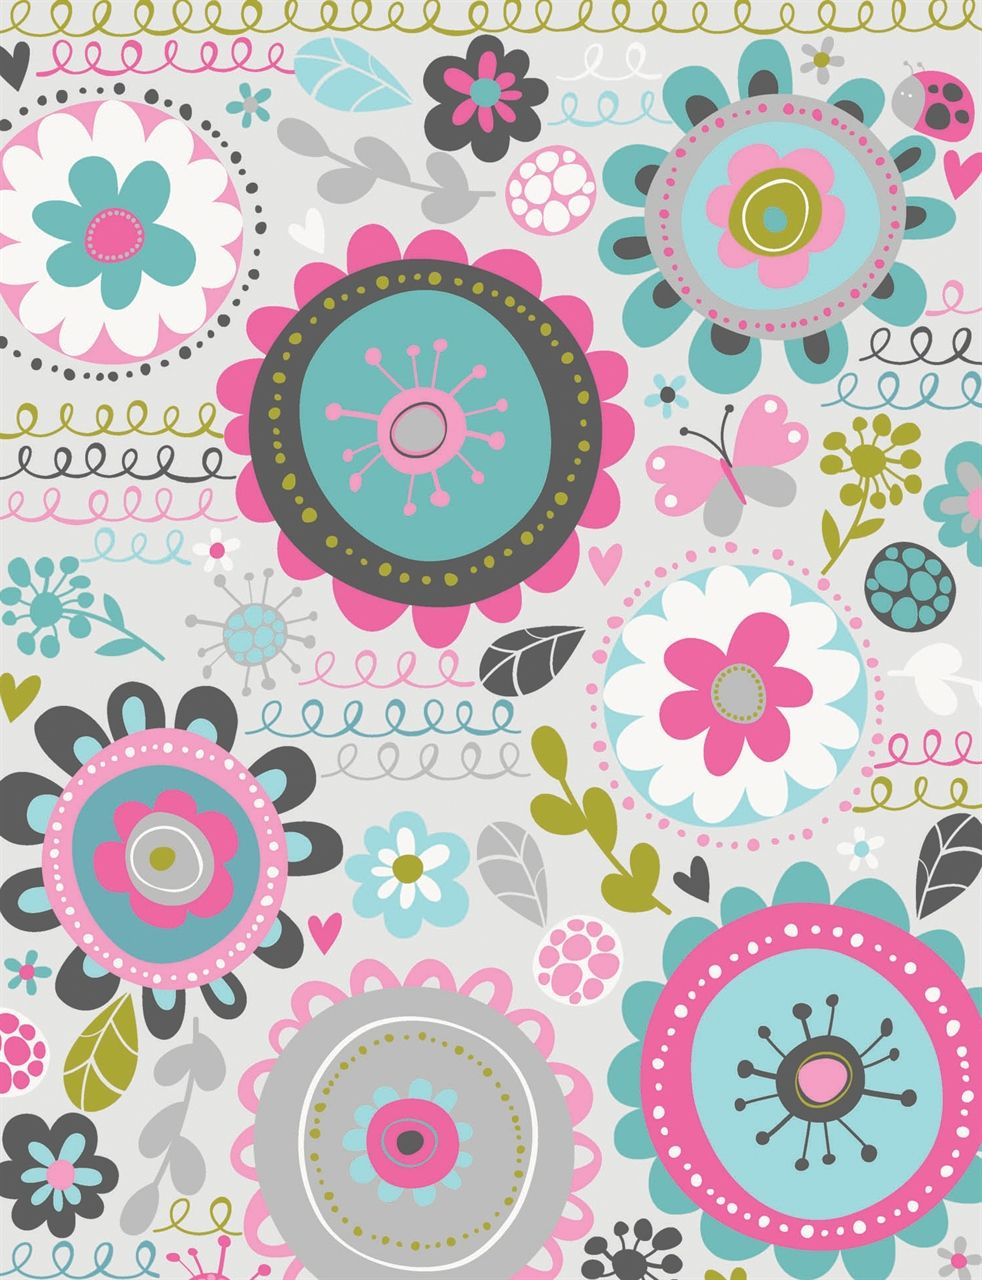 hiccup studio designs. pattern | paper print | pinterest | hiccup